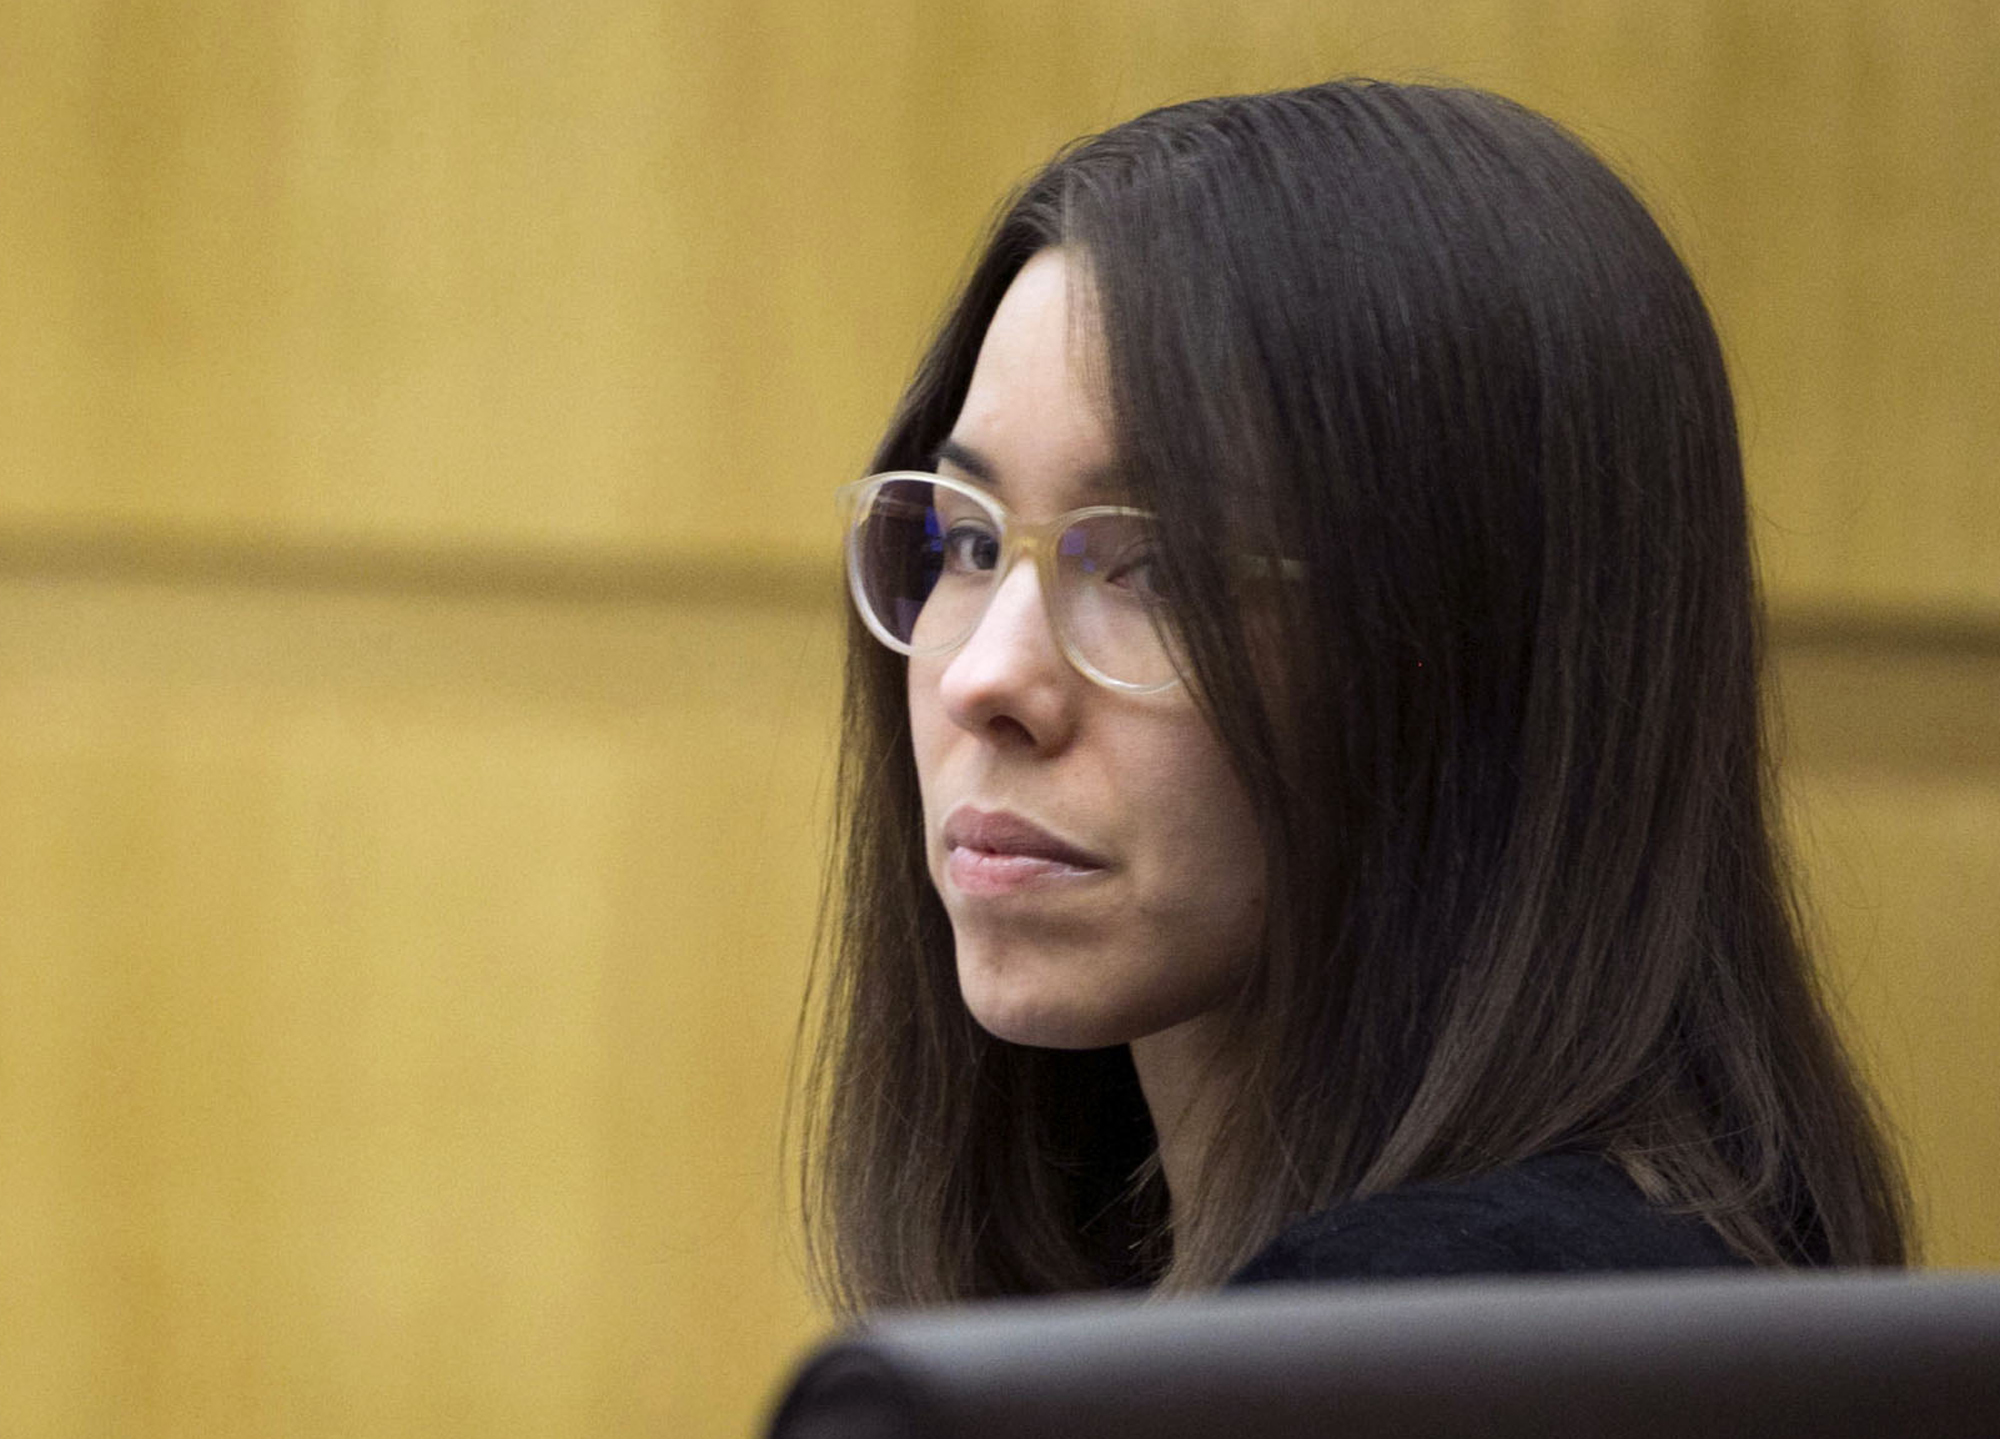 Jodi Arias Reveals Details About Life in Jail in Interview With Rapper